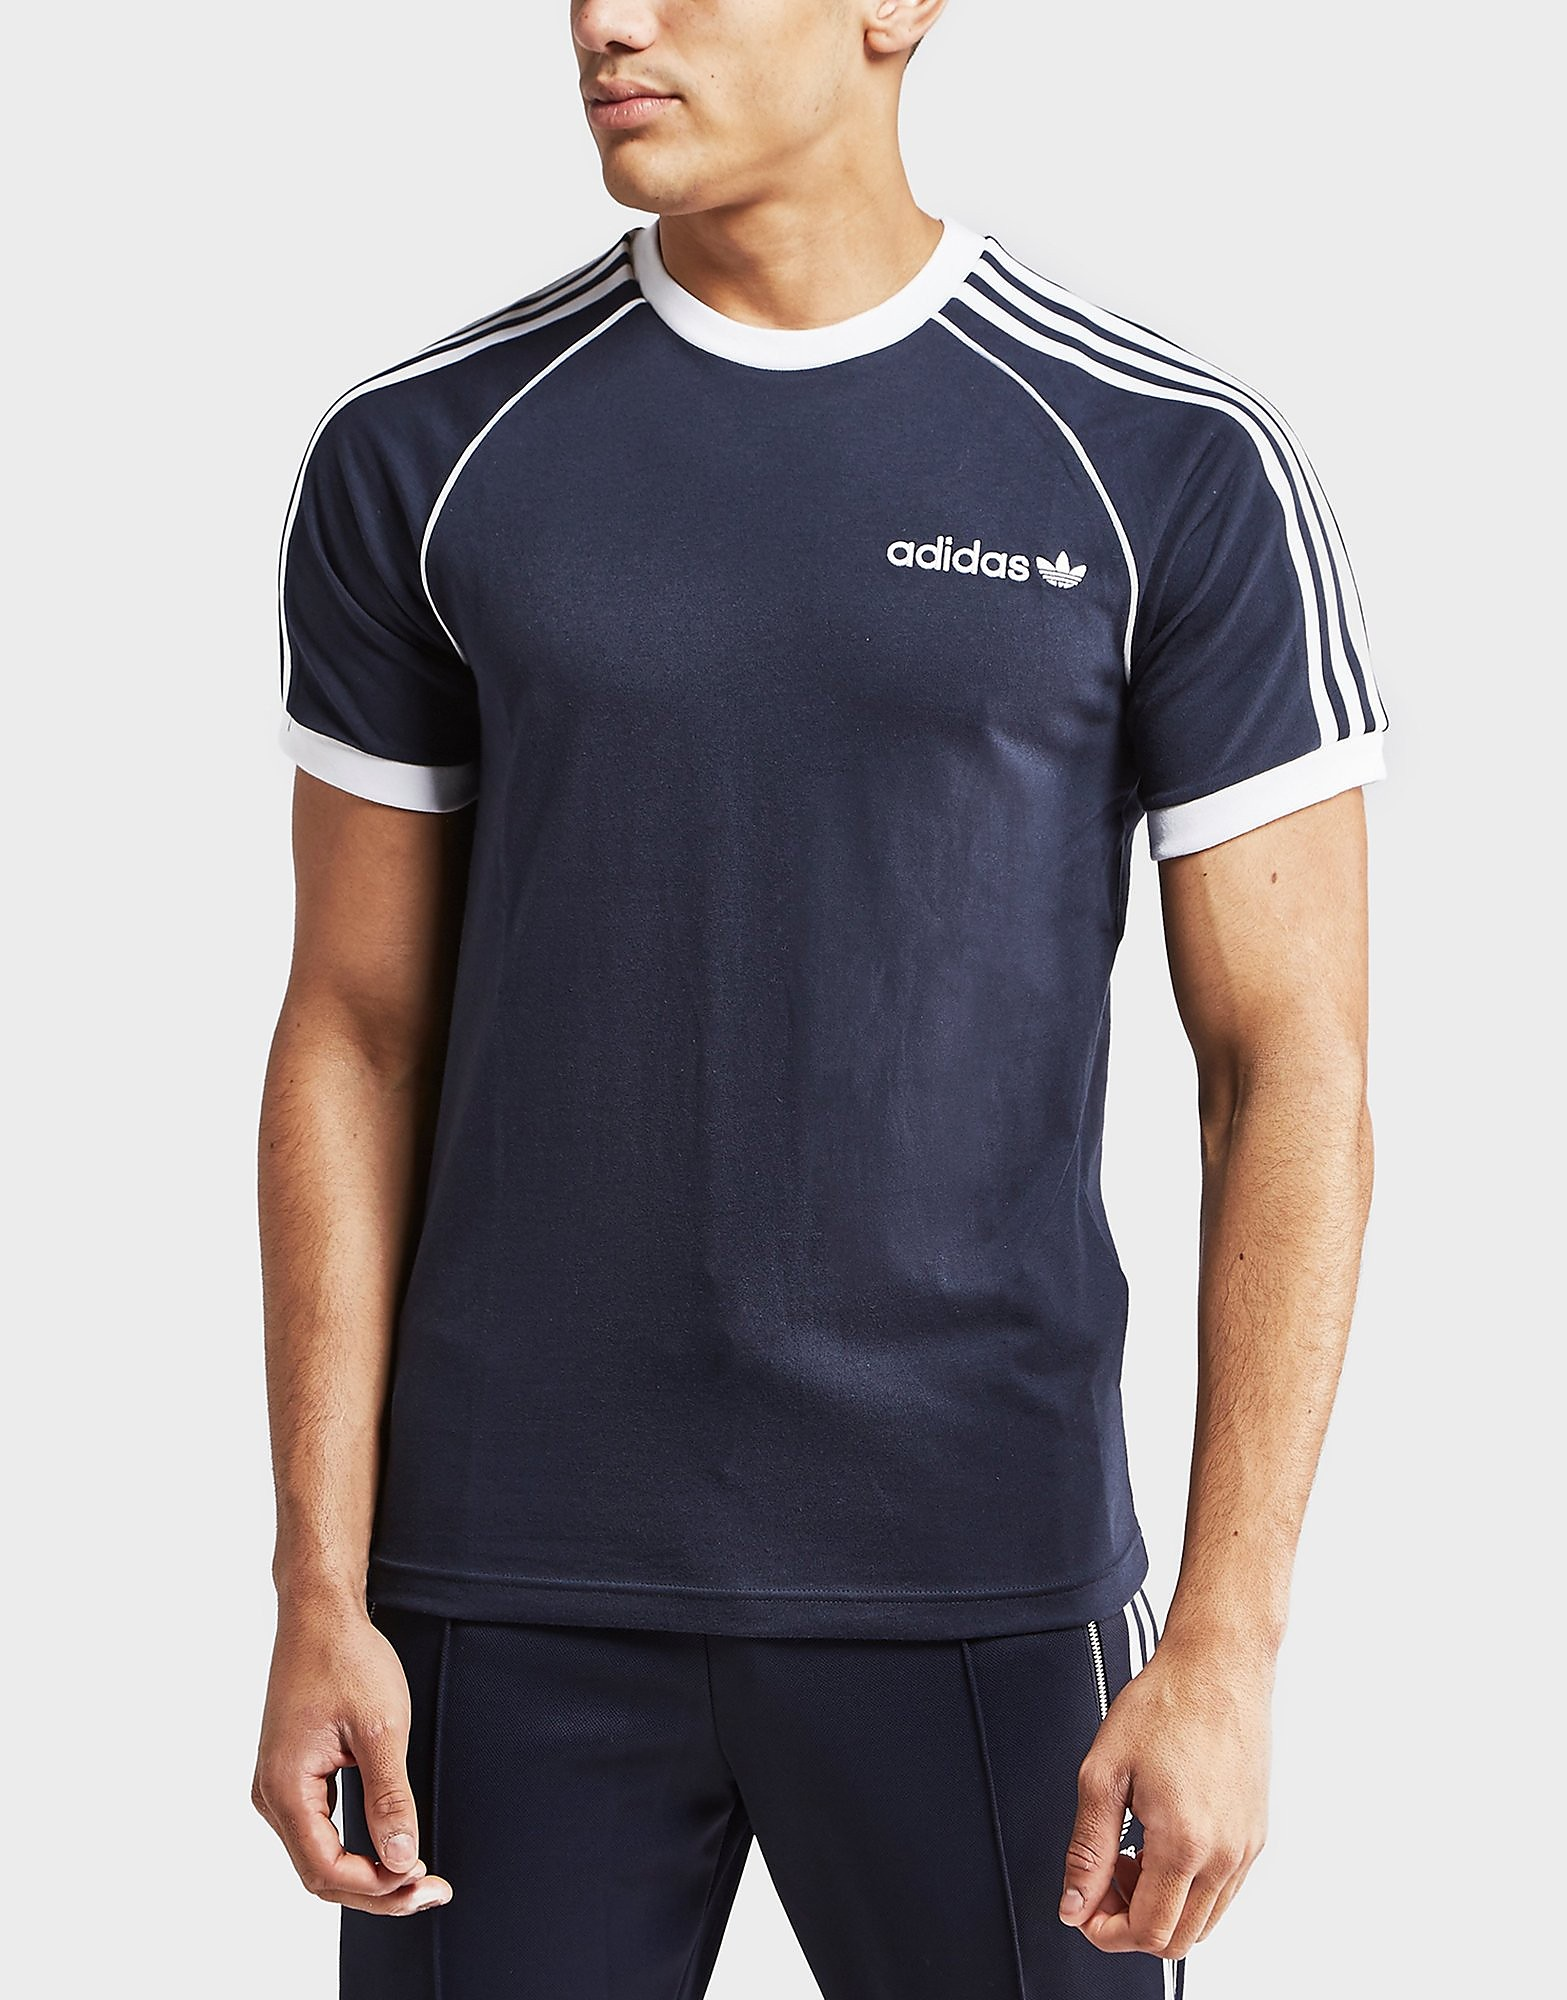 adidas Originals 70's California Short Sleeve T-Shirt